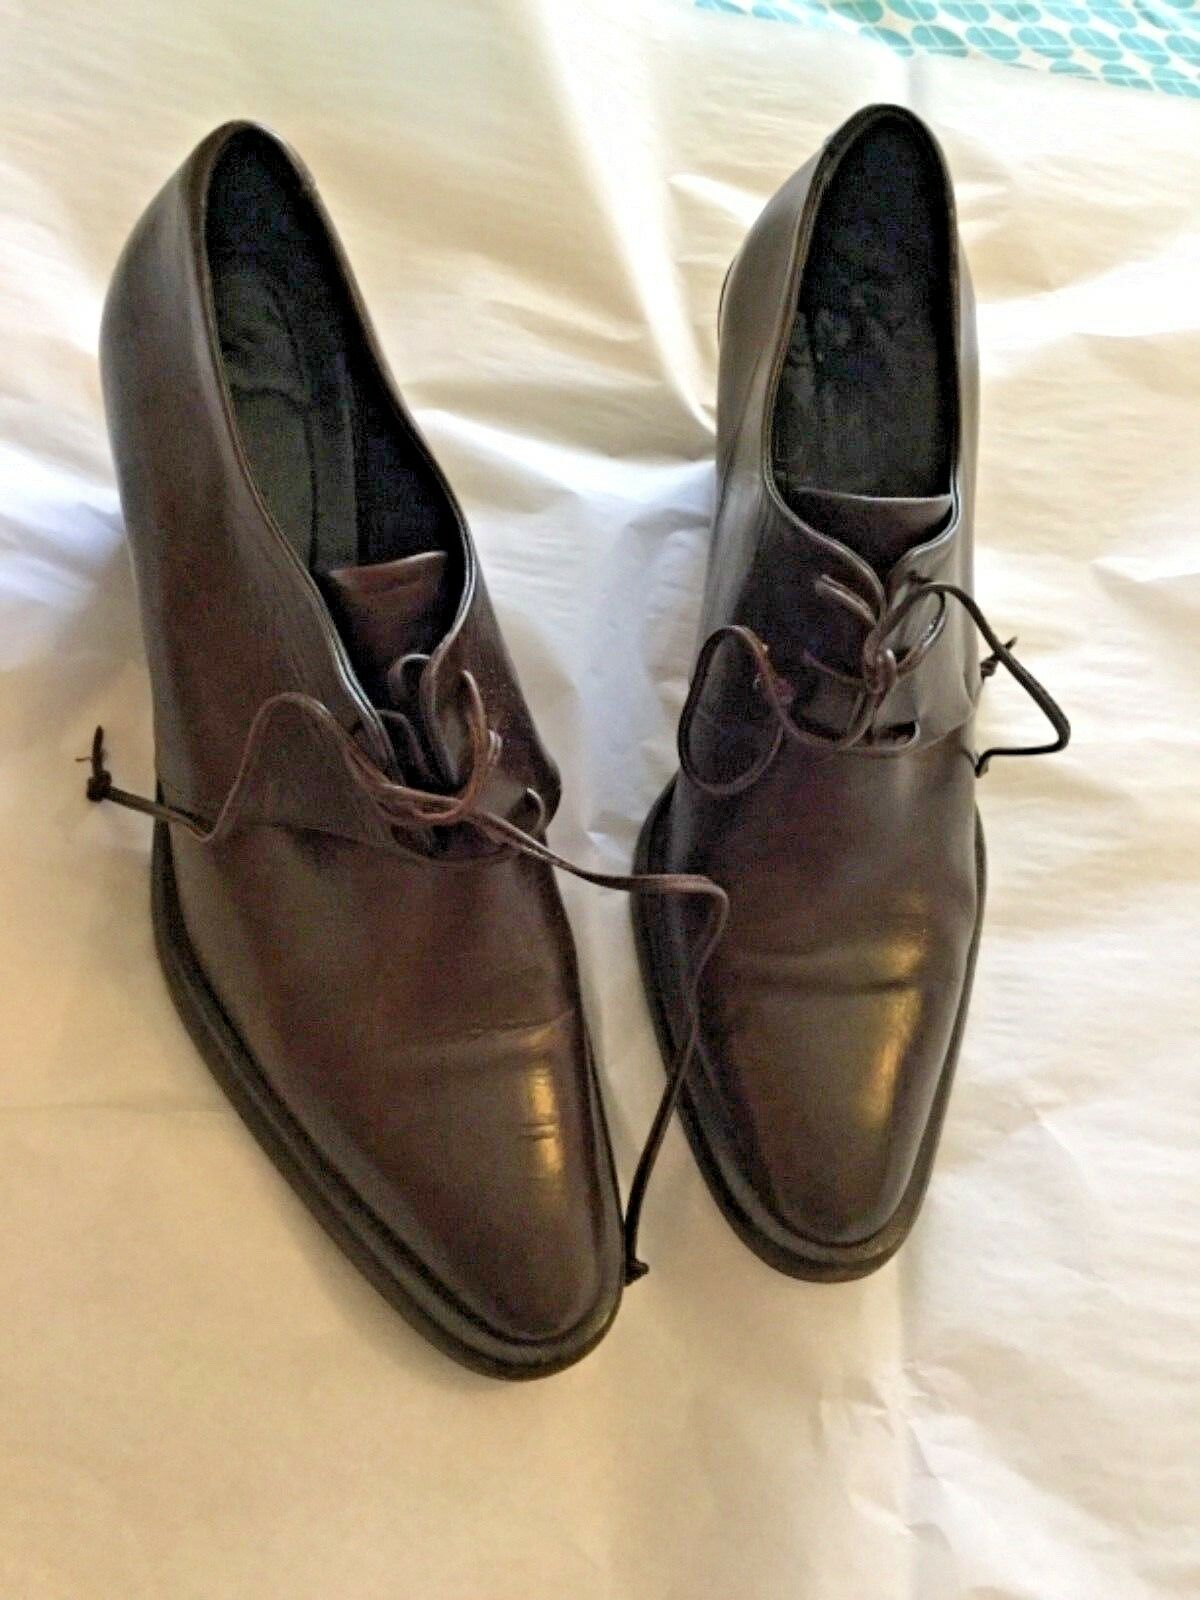 EXCELLENT CONDITION Joan & & & David braun Leather Lace-up Oxfords - 7.5M d7cc36